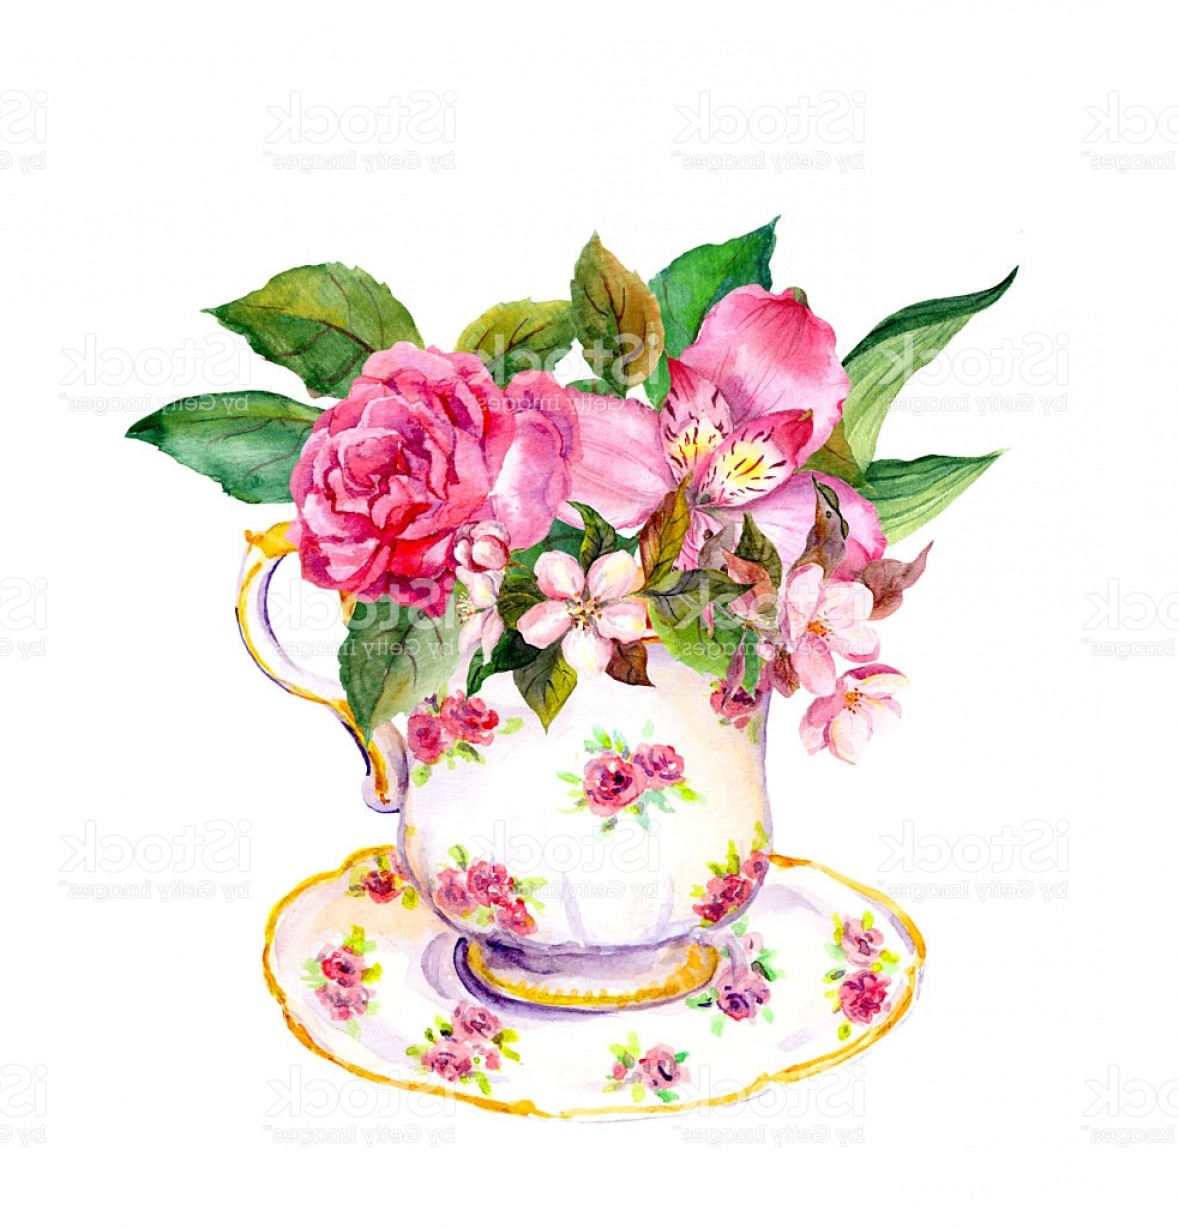 Vintage Tea Cup Vector: Vintage Teacup With Rose Pink Flowers Tea Party Watercolor Gm